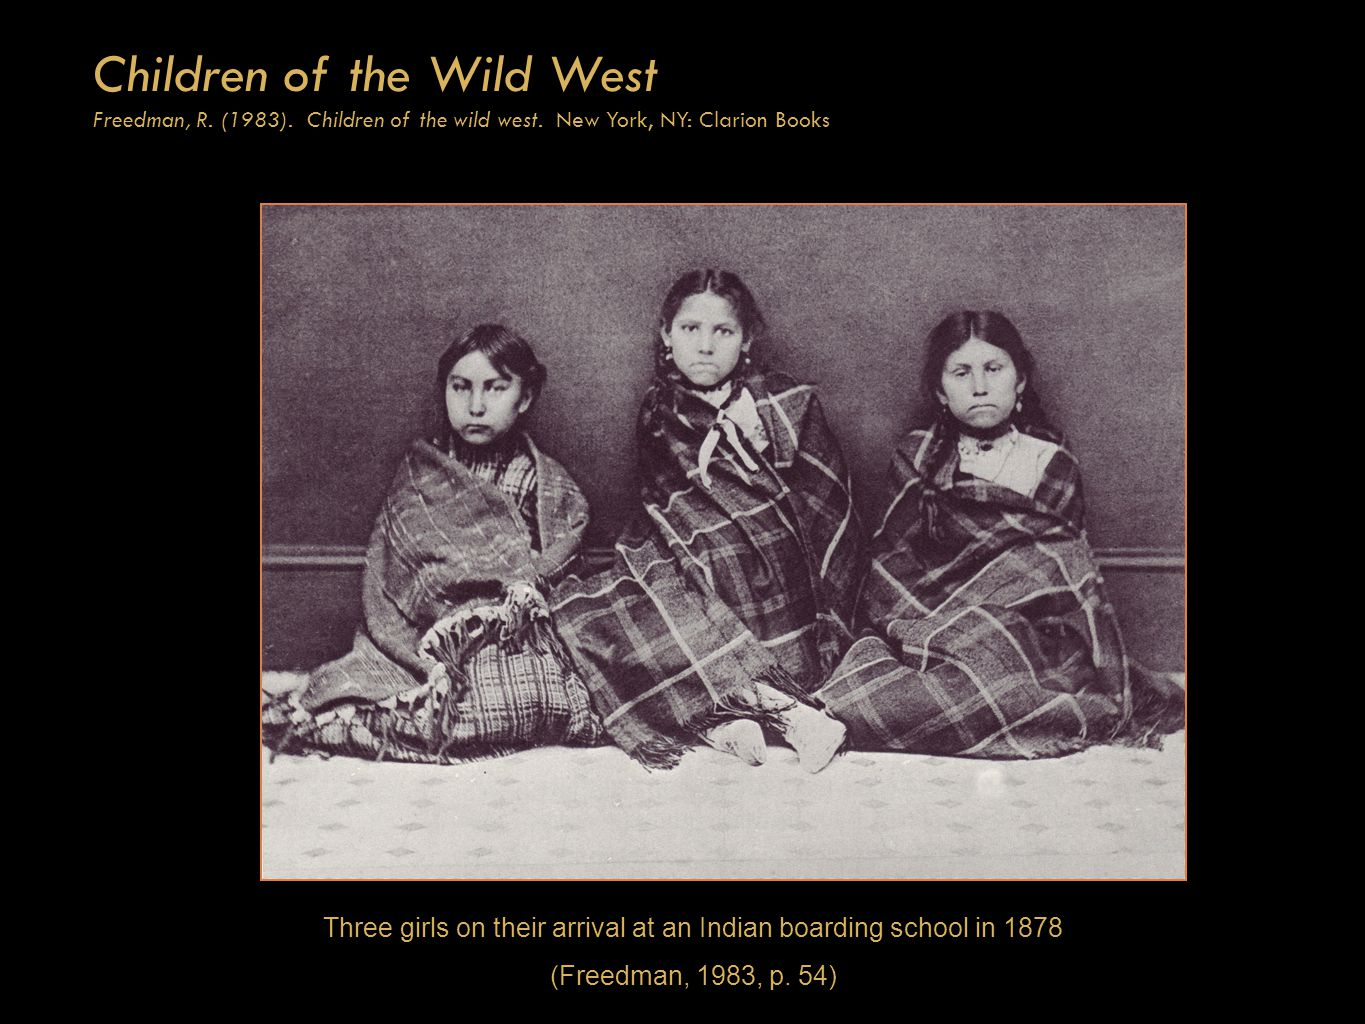 Children of the Wild West Freedman, R. (1983). Children of the wild west.